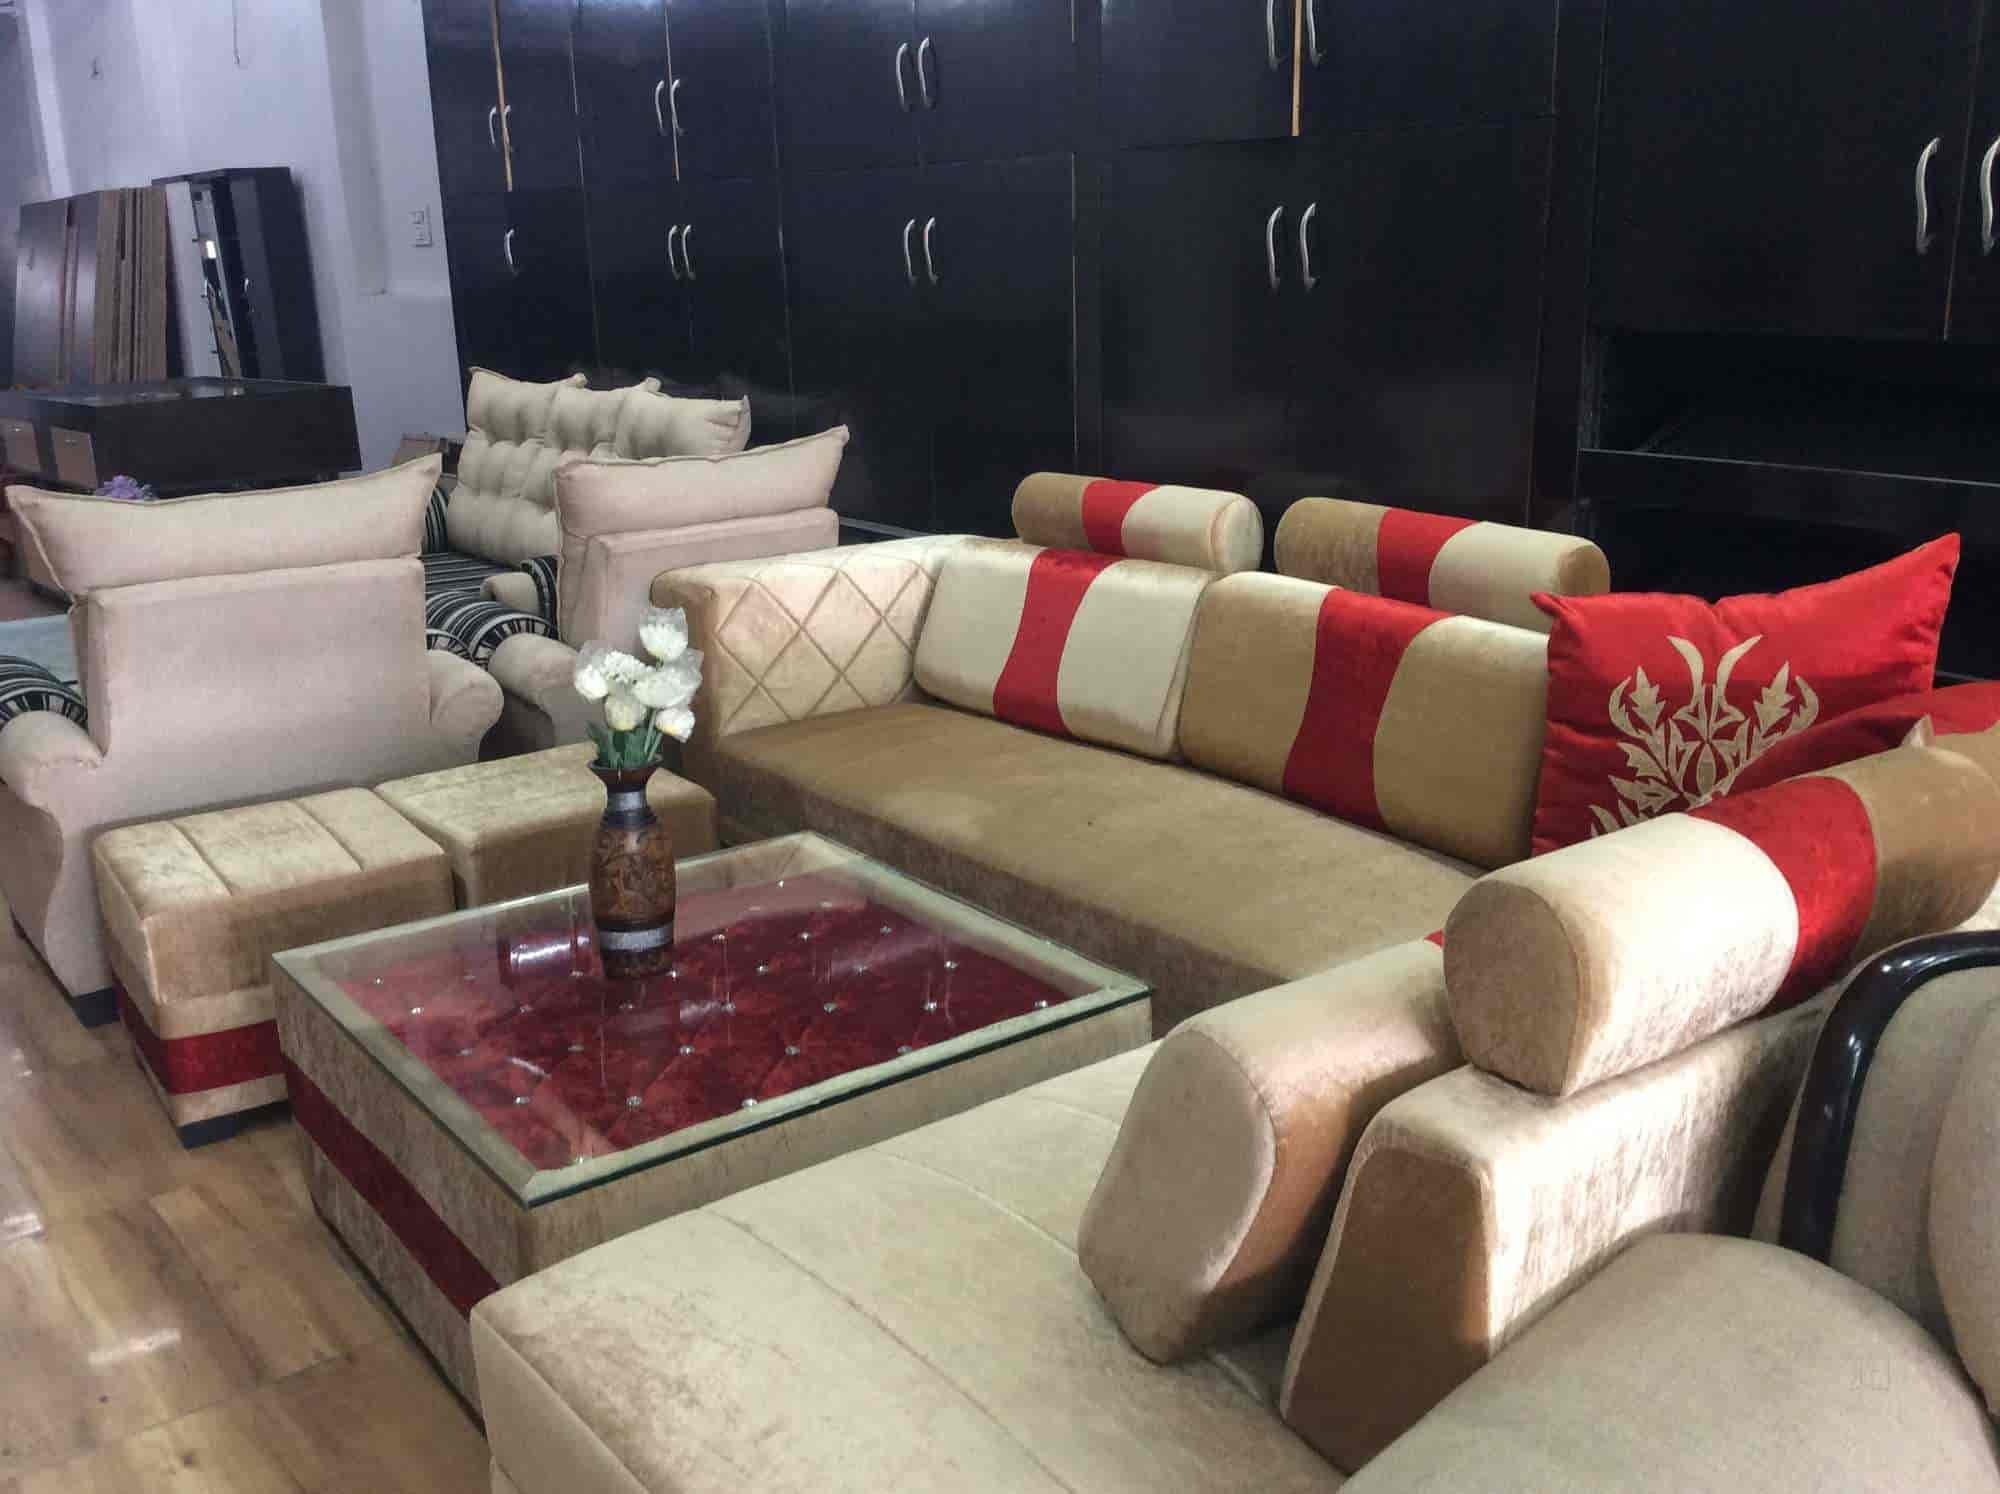 Vidharbha Wholesale Furniture Chhindwara Road Furniture